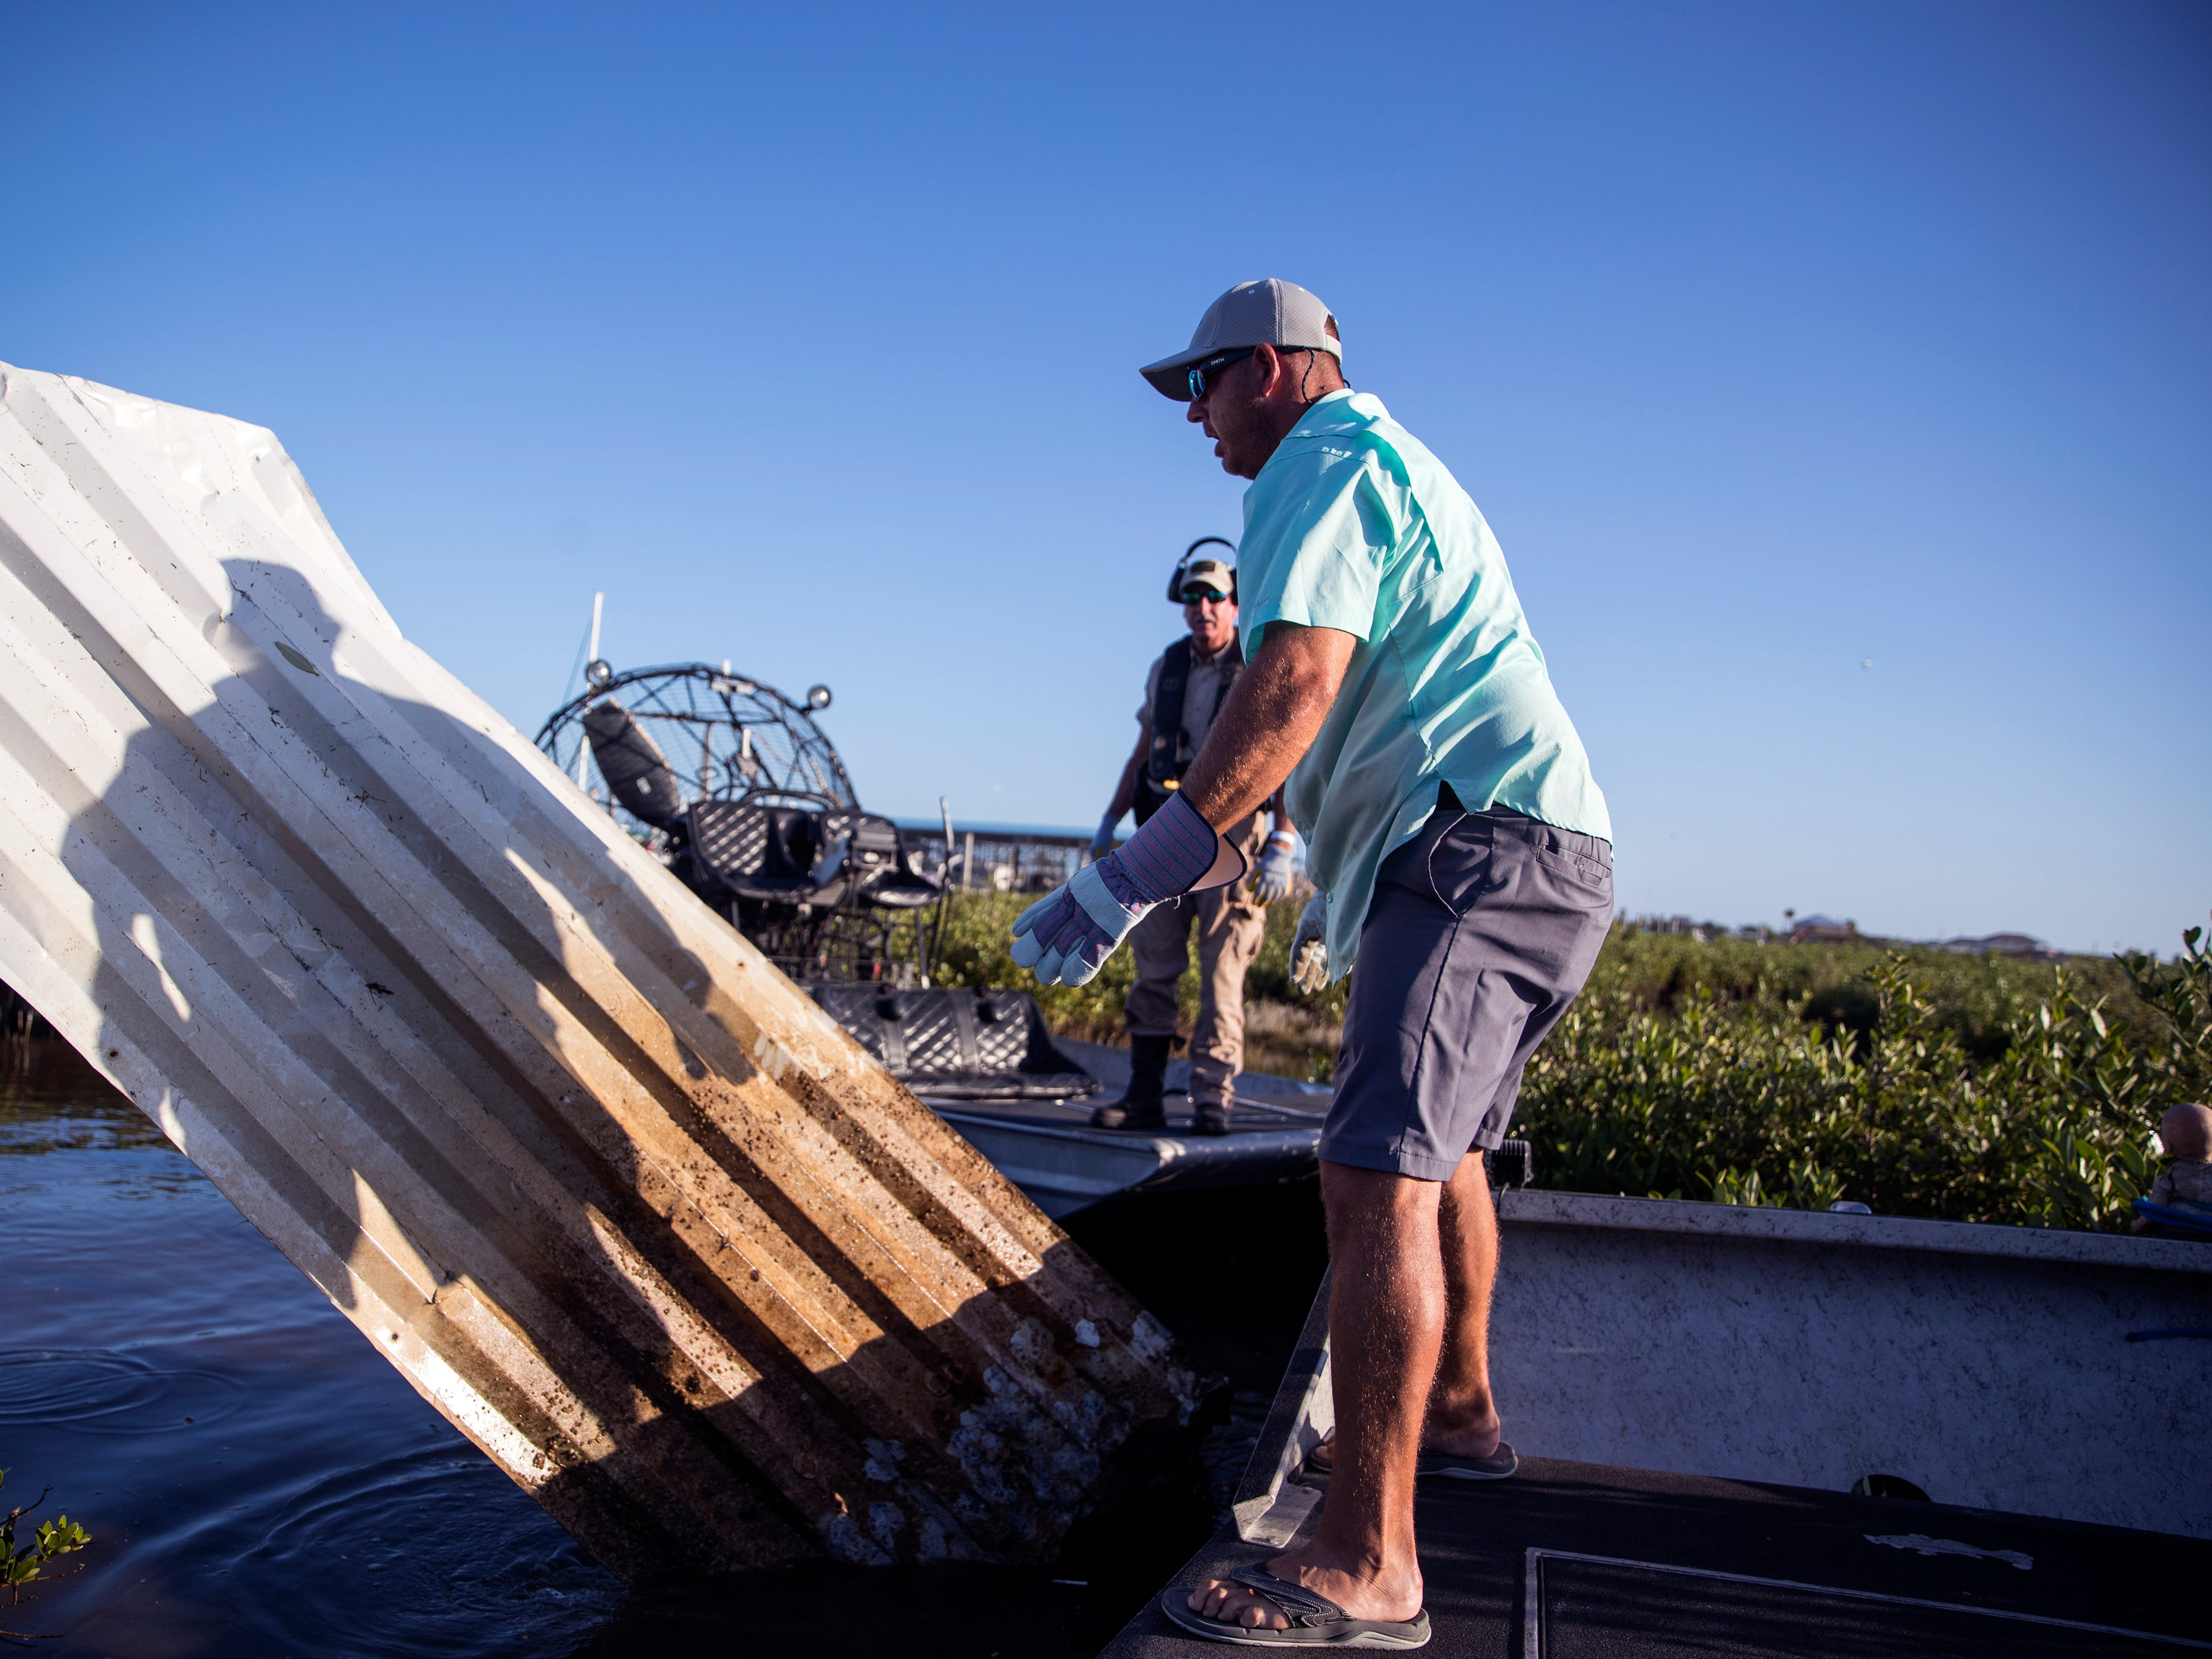 Texas Game Warden Scott McLeod (left) and Brett Phillips pull roofing material from Cove Harbor in Aransas County on Tuesday, October 30, 2018 during a cleanup organized by Keep Aransas County Beautiful.Volunteers were working to clean debris from the wetlands and harbor that was scattered by Hurricane Harvey over 14 months ago.